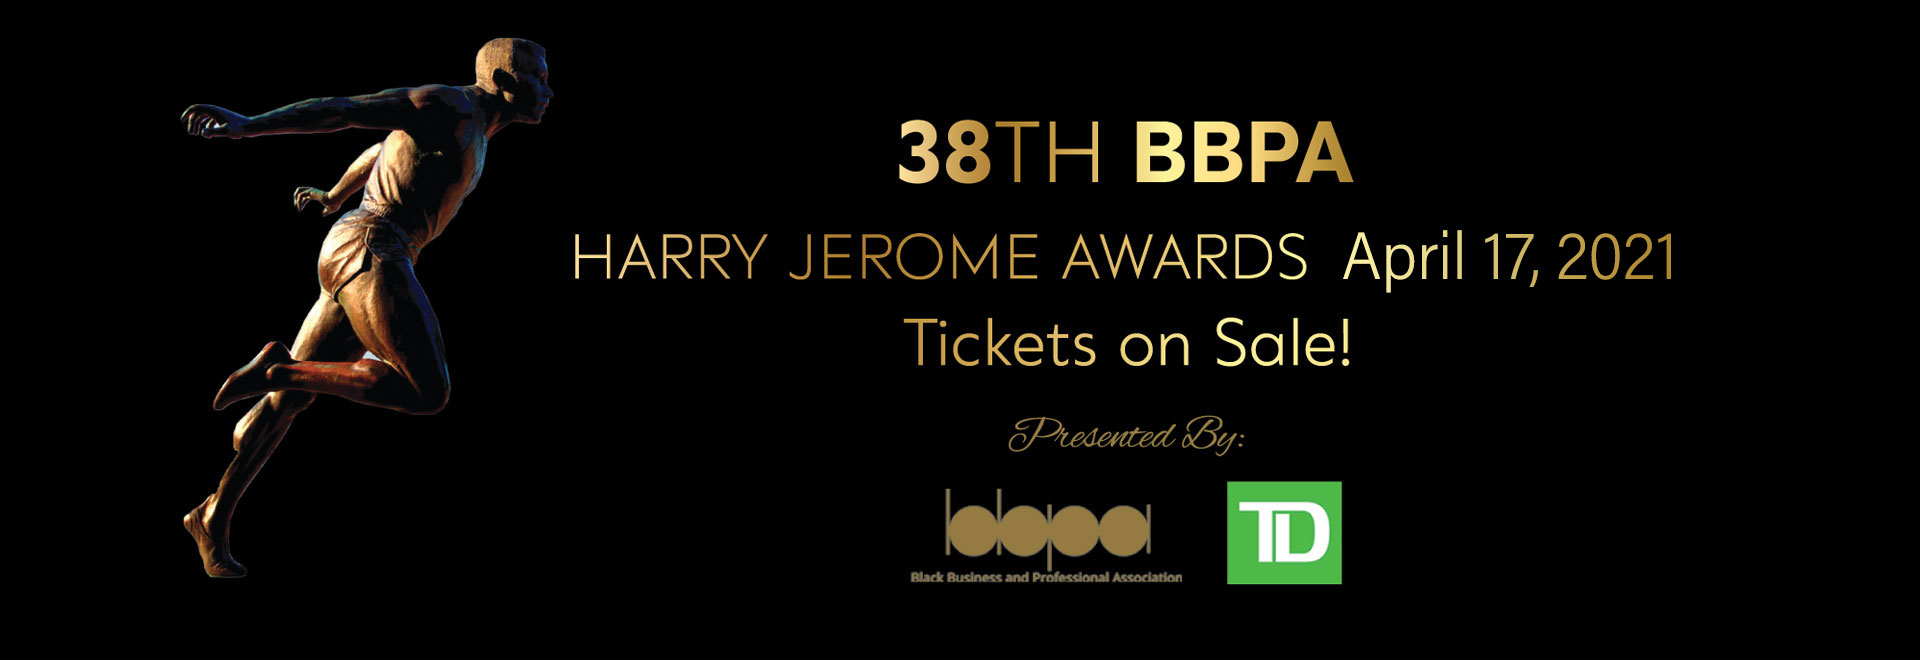 38th-bbpa-hja-awards-slide